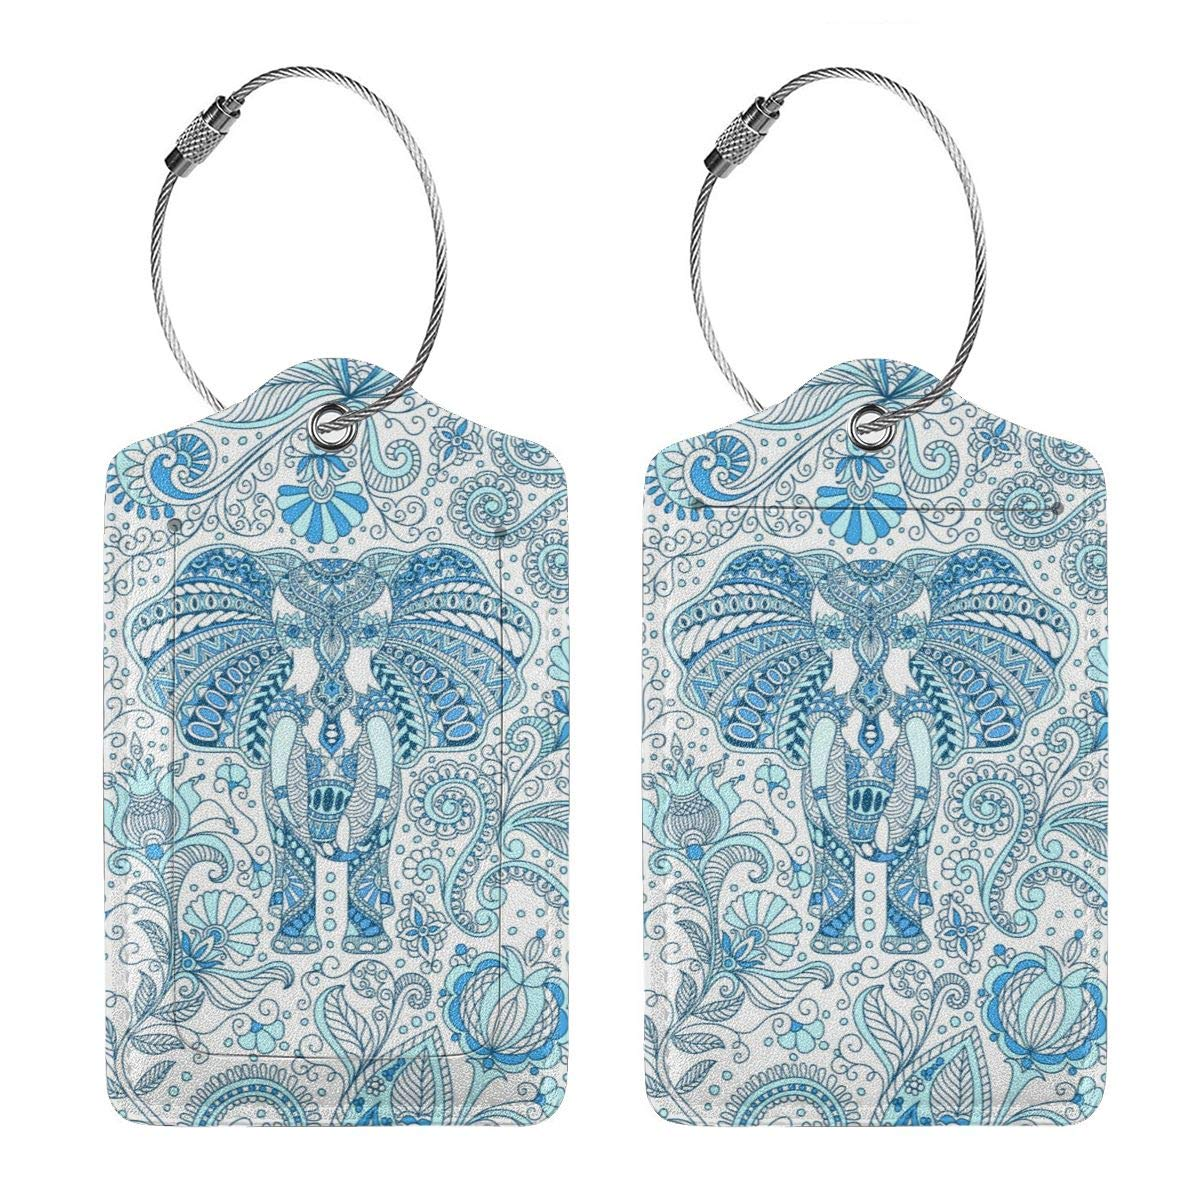 Blue Indian Elephant Travel Luggage Tags With Full Privacy Cover Leather Case And Stainless Steel Loop